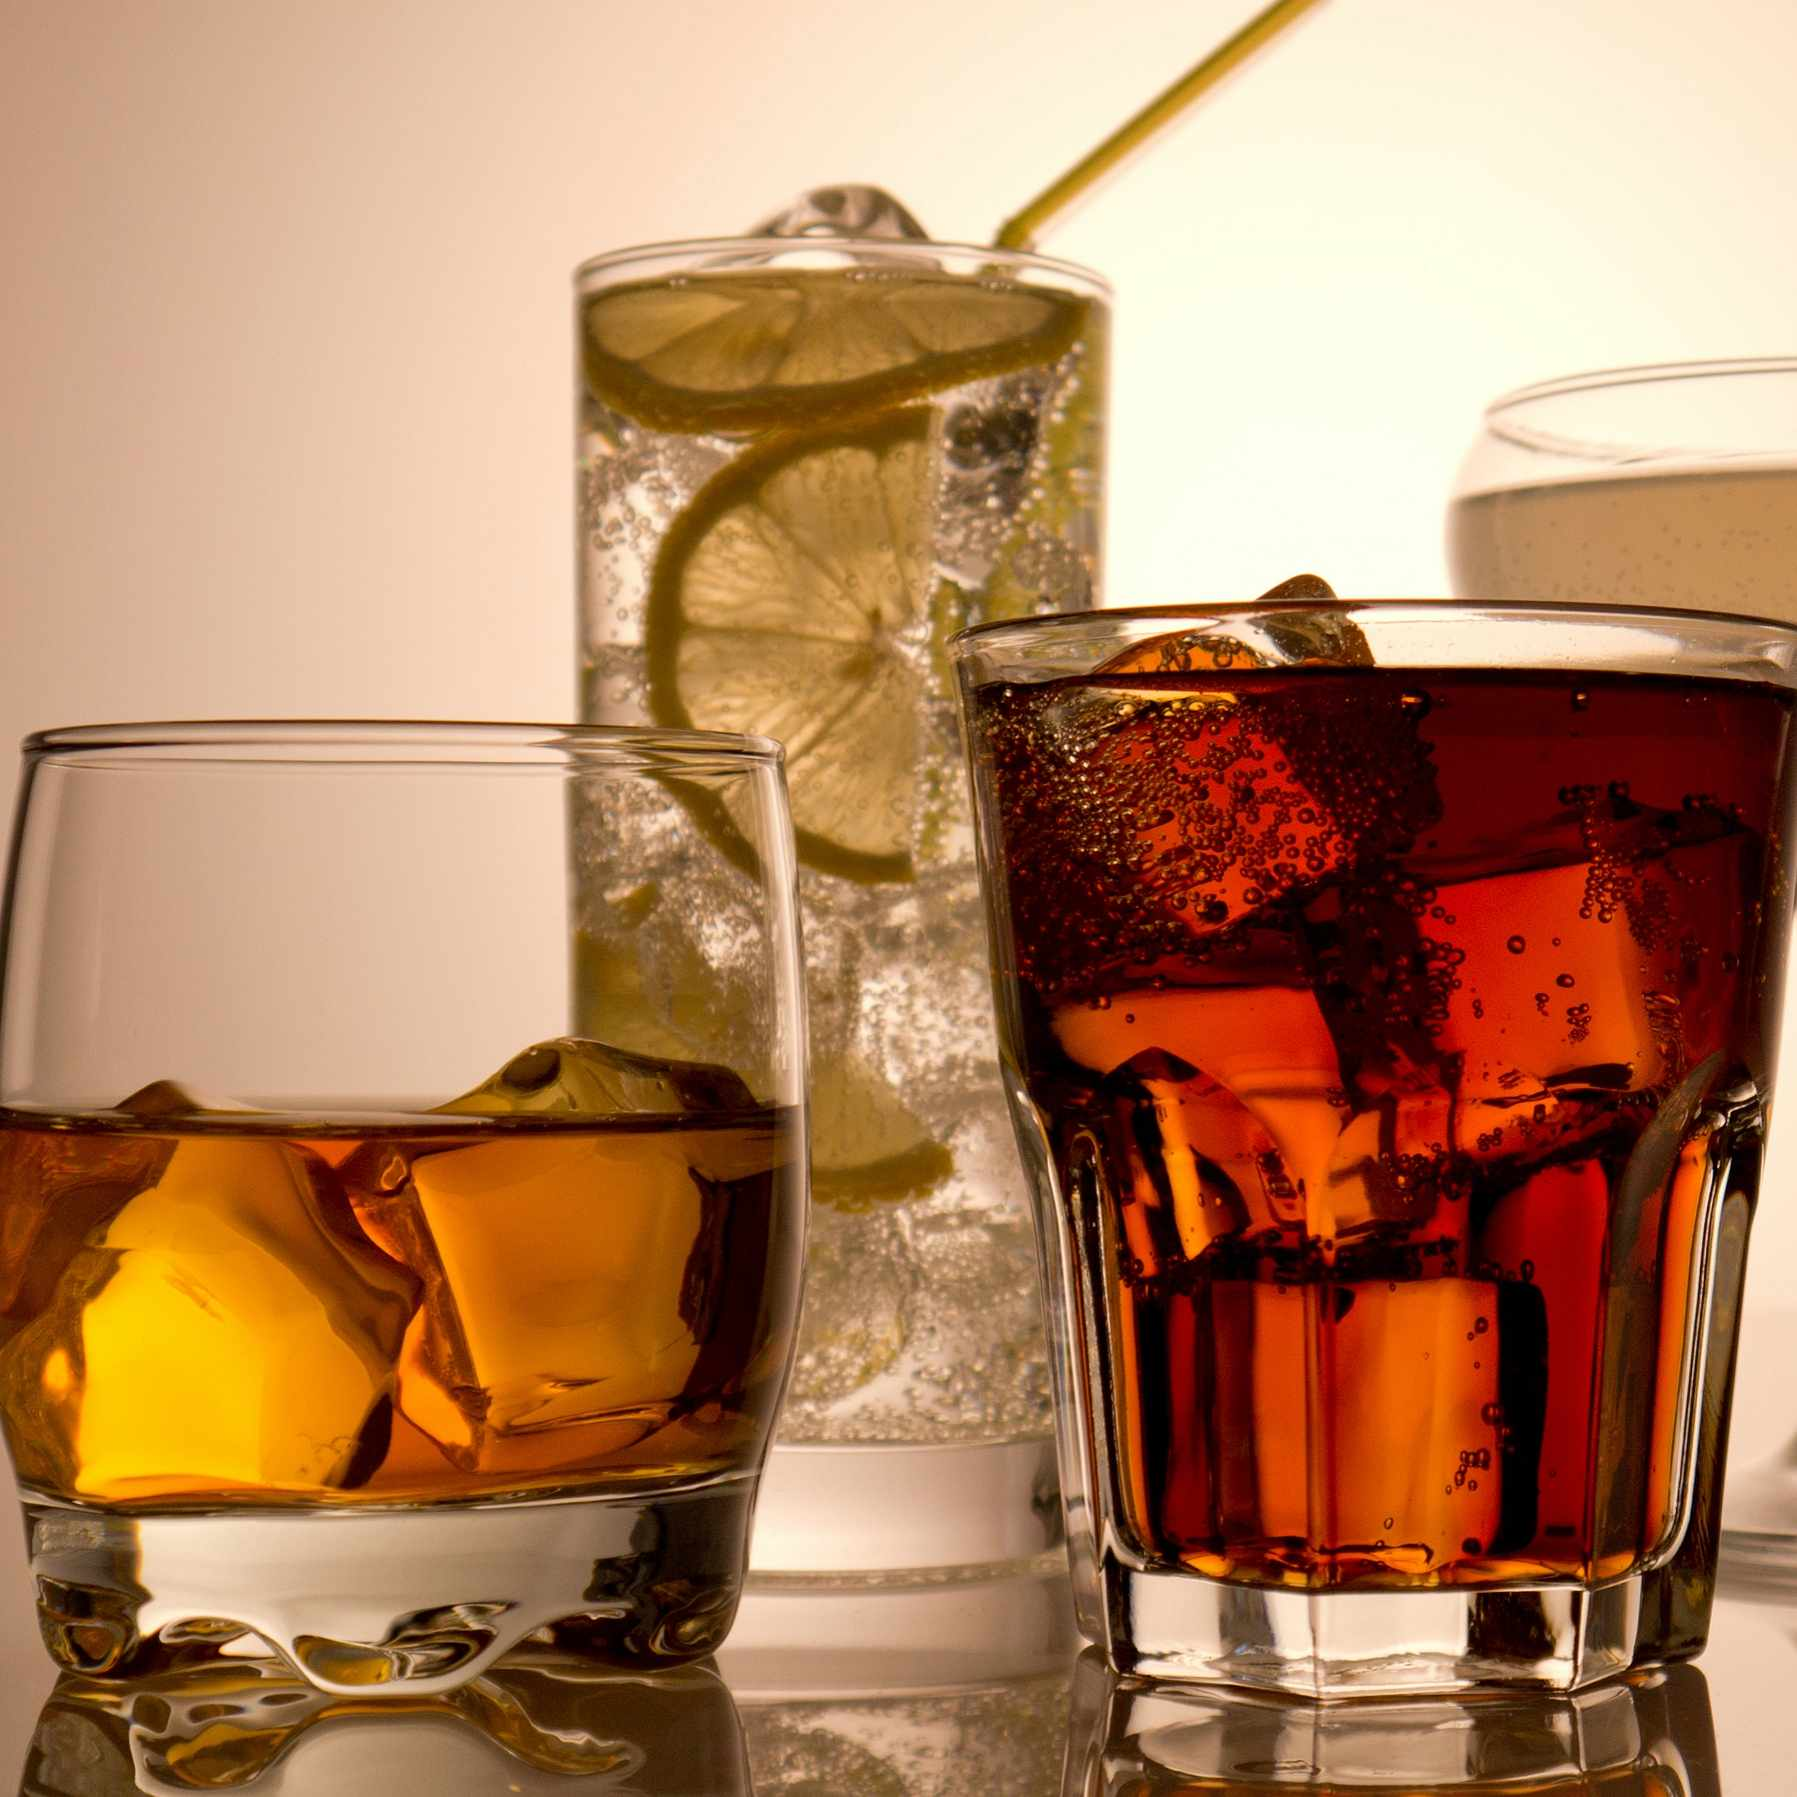 various mixed drinks, alcoholic beverages in different glasses